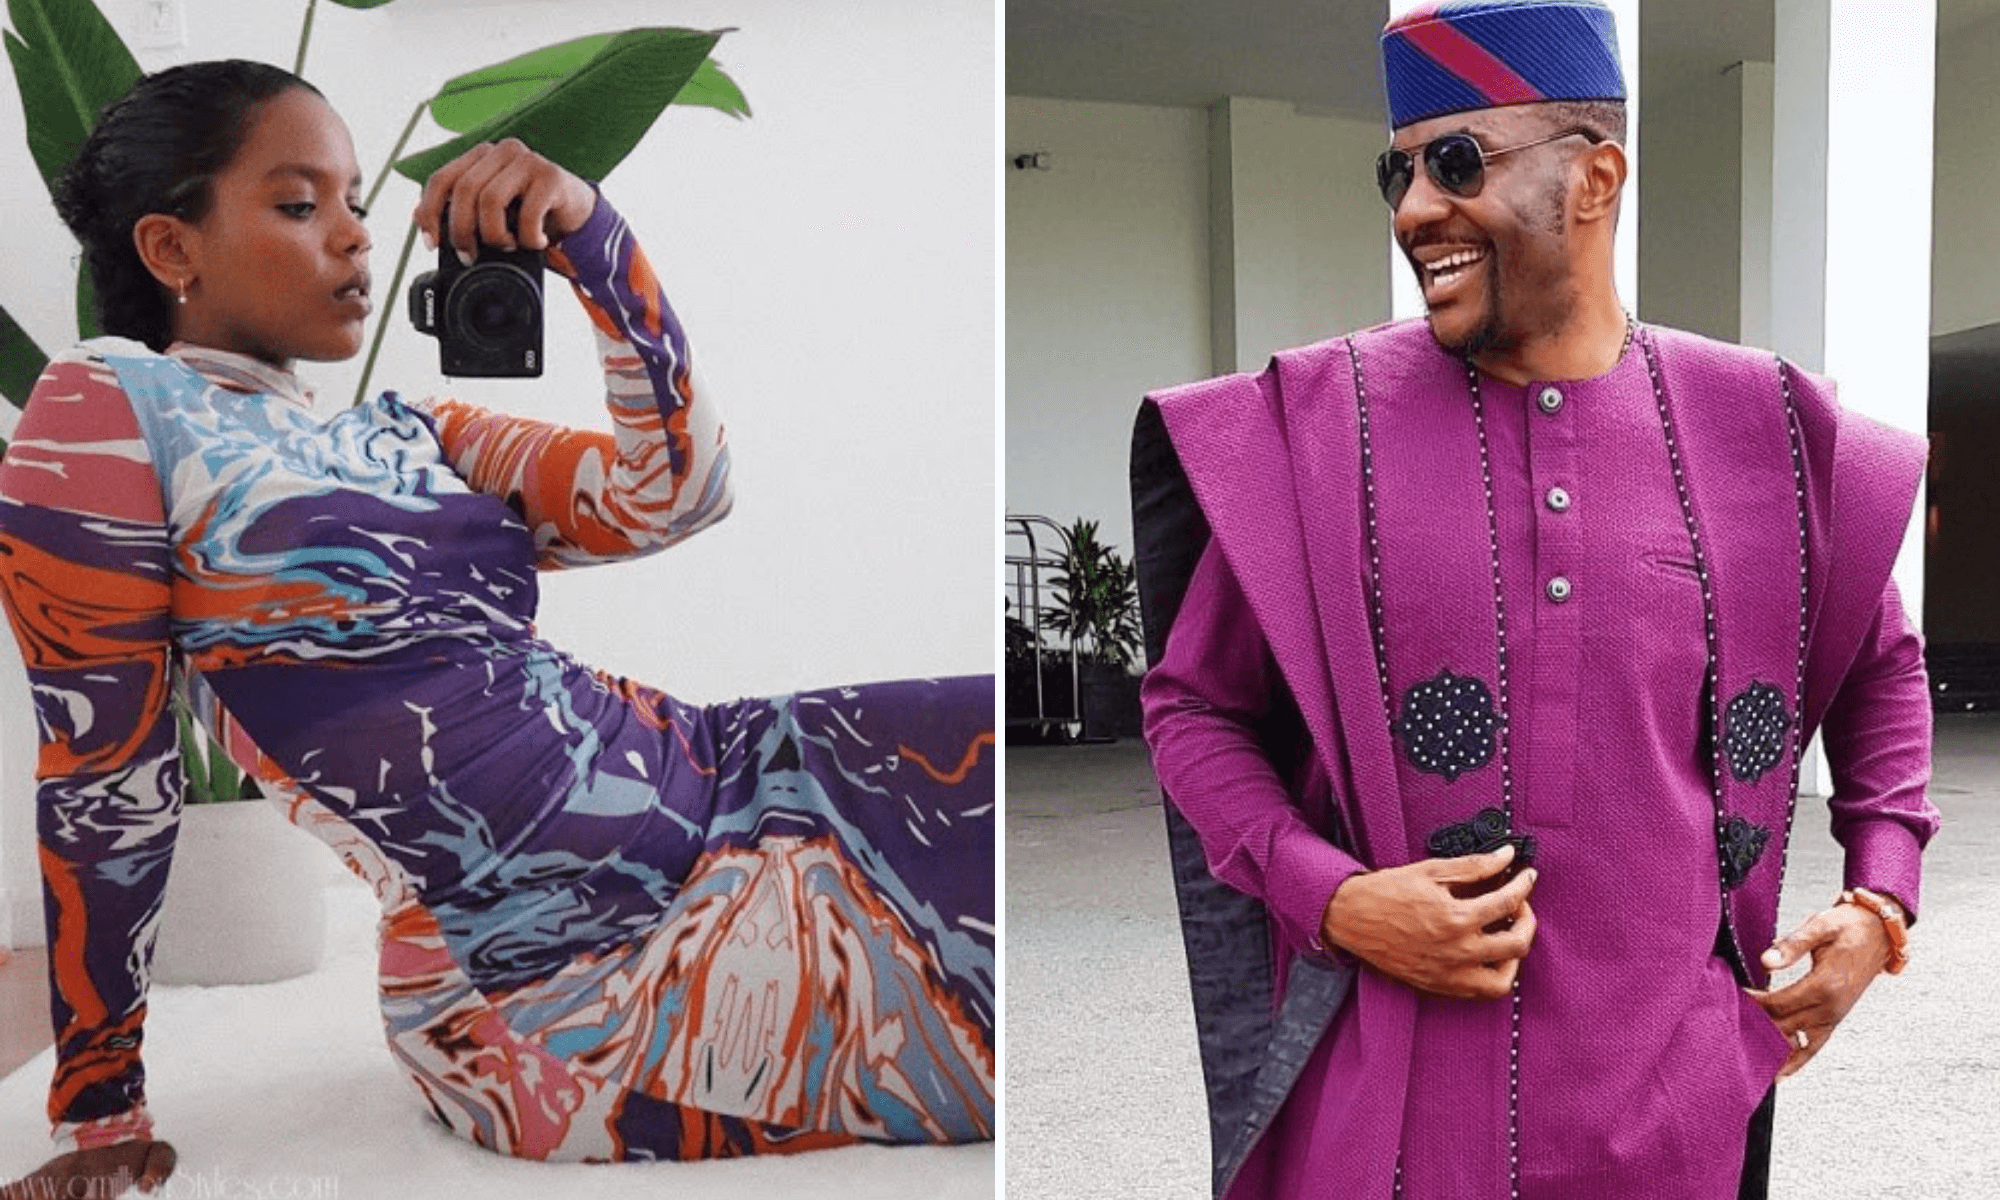 Nigerian creators are taking a stand against appropriation